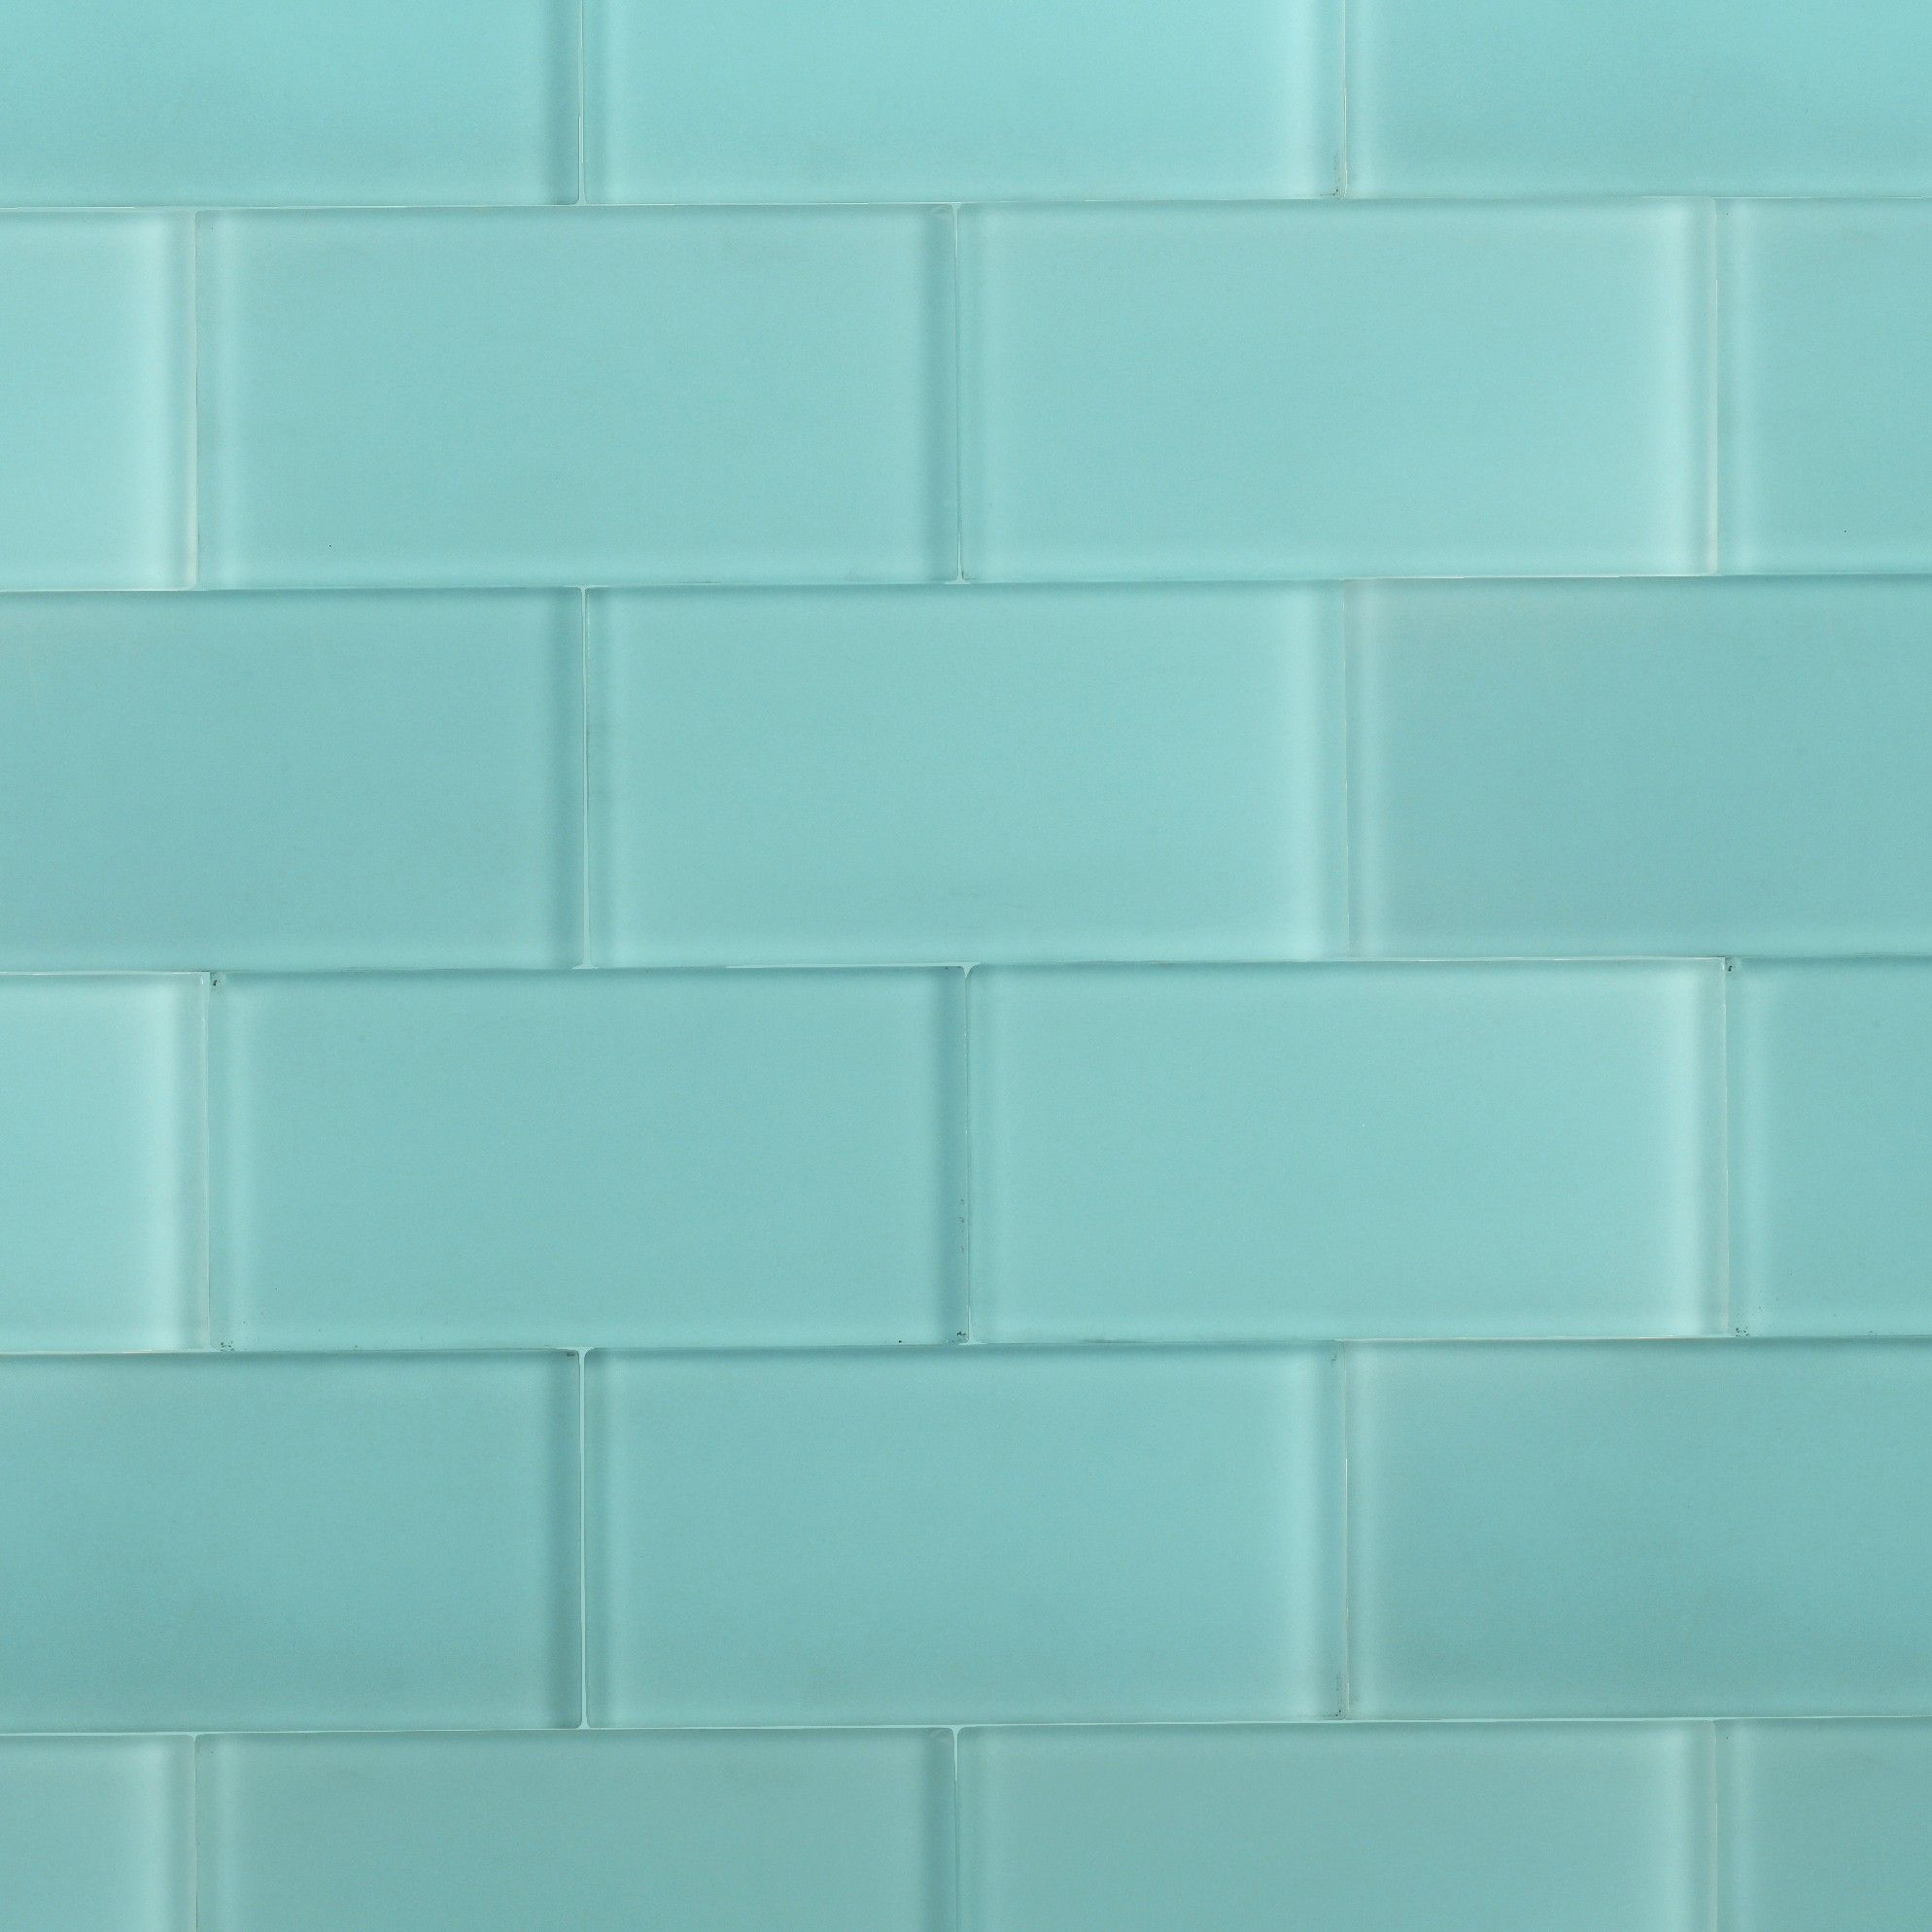 Turquoise Kitchen Wall Tiles: Shop For Loft Turquoise Frosted 3 X 6 Glass Tiles At